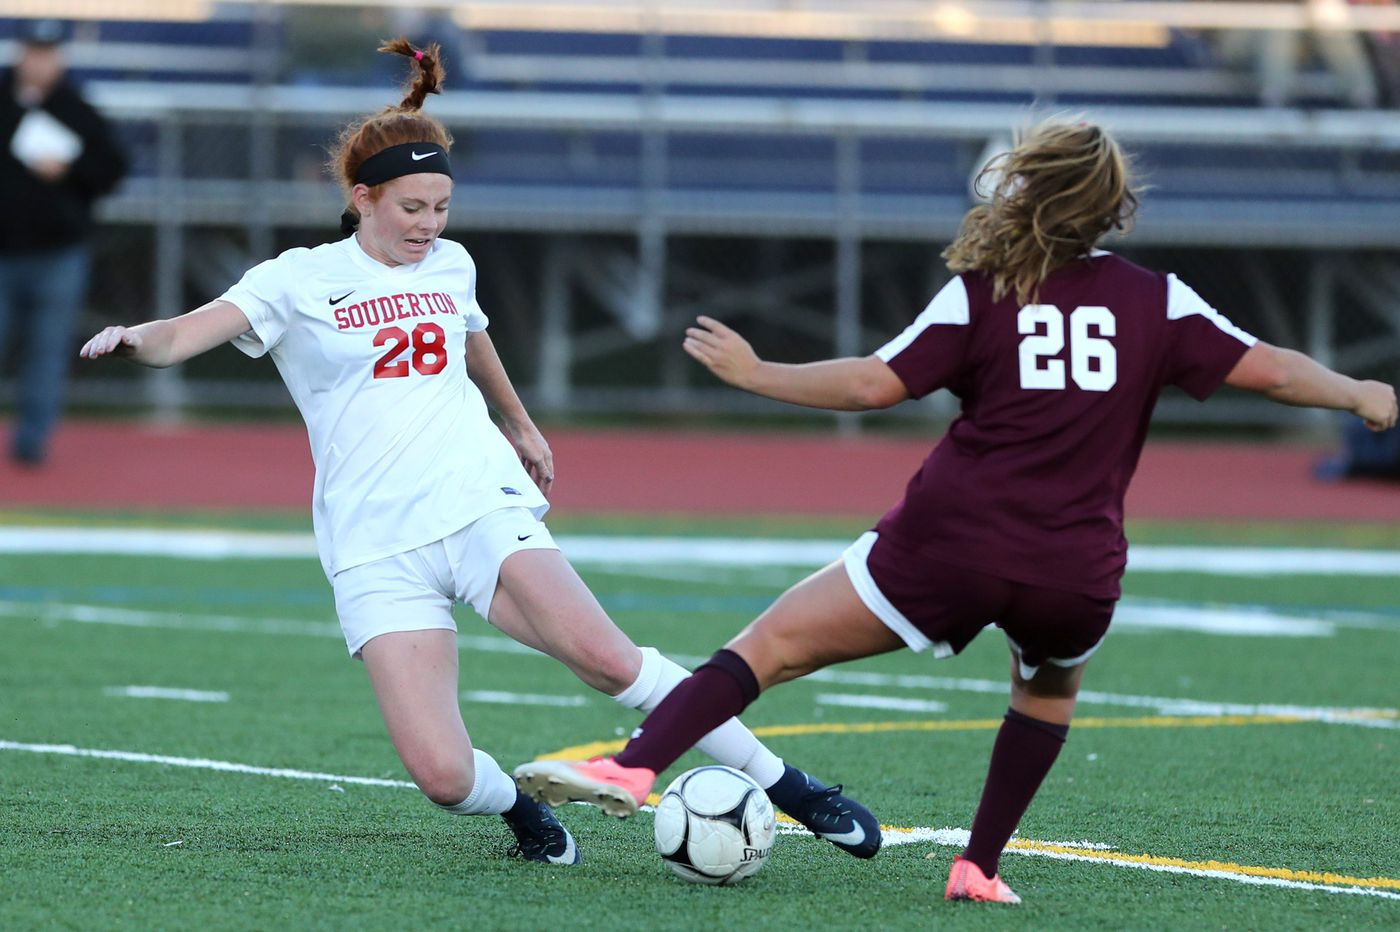 Souderton and Pennridge to meet Saturday for girls' soccer PIAA state championship